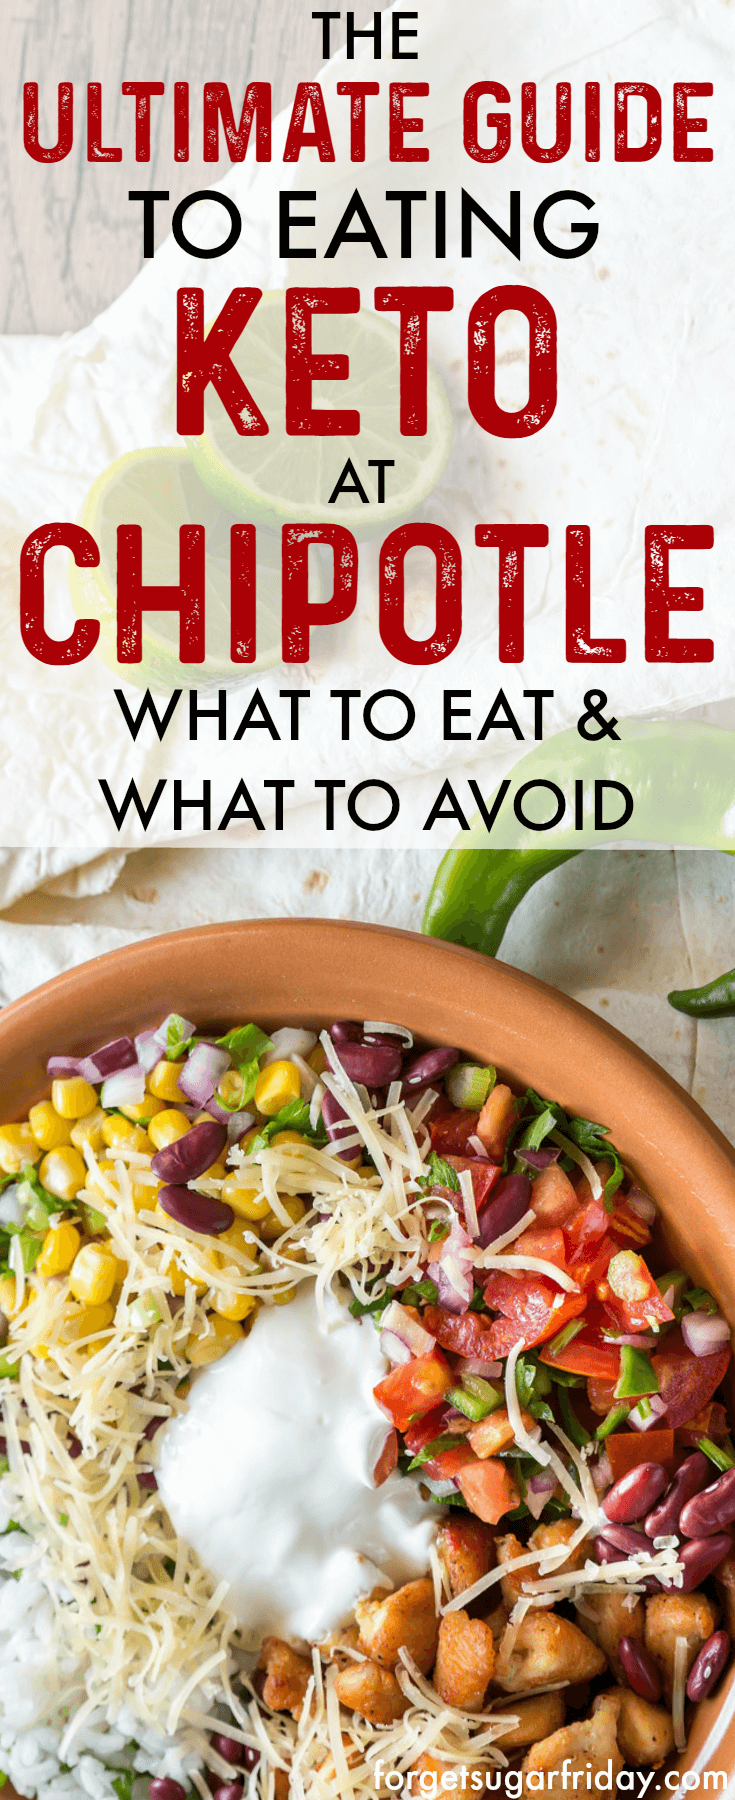 If you love Chipotle, you NEED this post!! The Ultimate Keto Chipotle Guide lays out exactly what to order at Chipotle if you're on the keto diet as well as foods to avoid. Plus: The Ultimate Chipotle Keto Fat Bomb Bowl! #keto #ketodiet #ketogenic #ketogenicdiet #chipotle